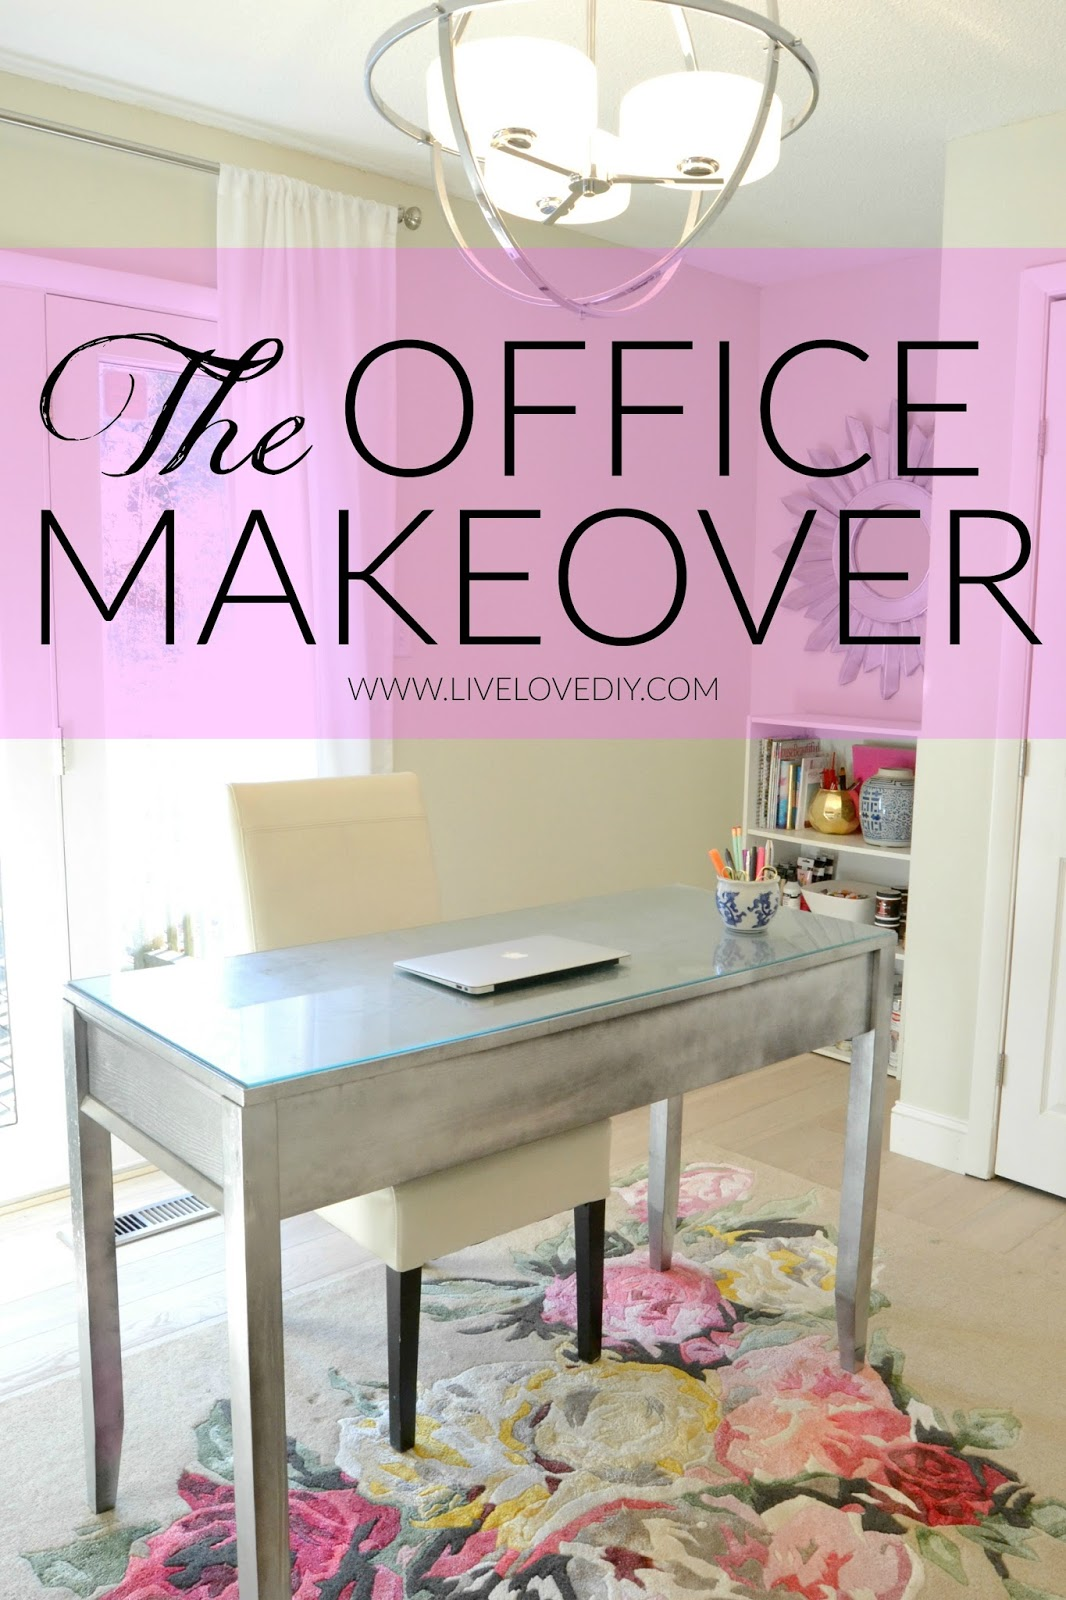 LiveLoveDIY: Home Office Decorating Ideas: My Latest